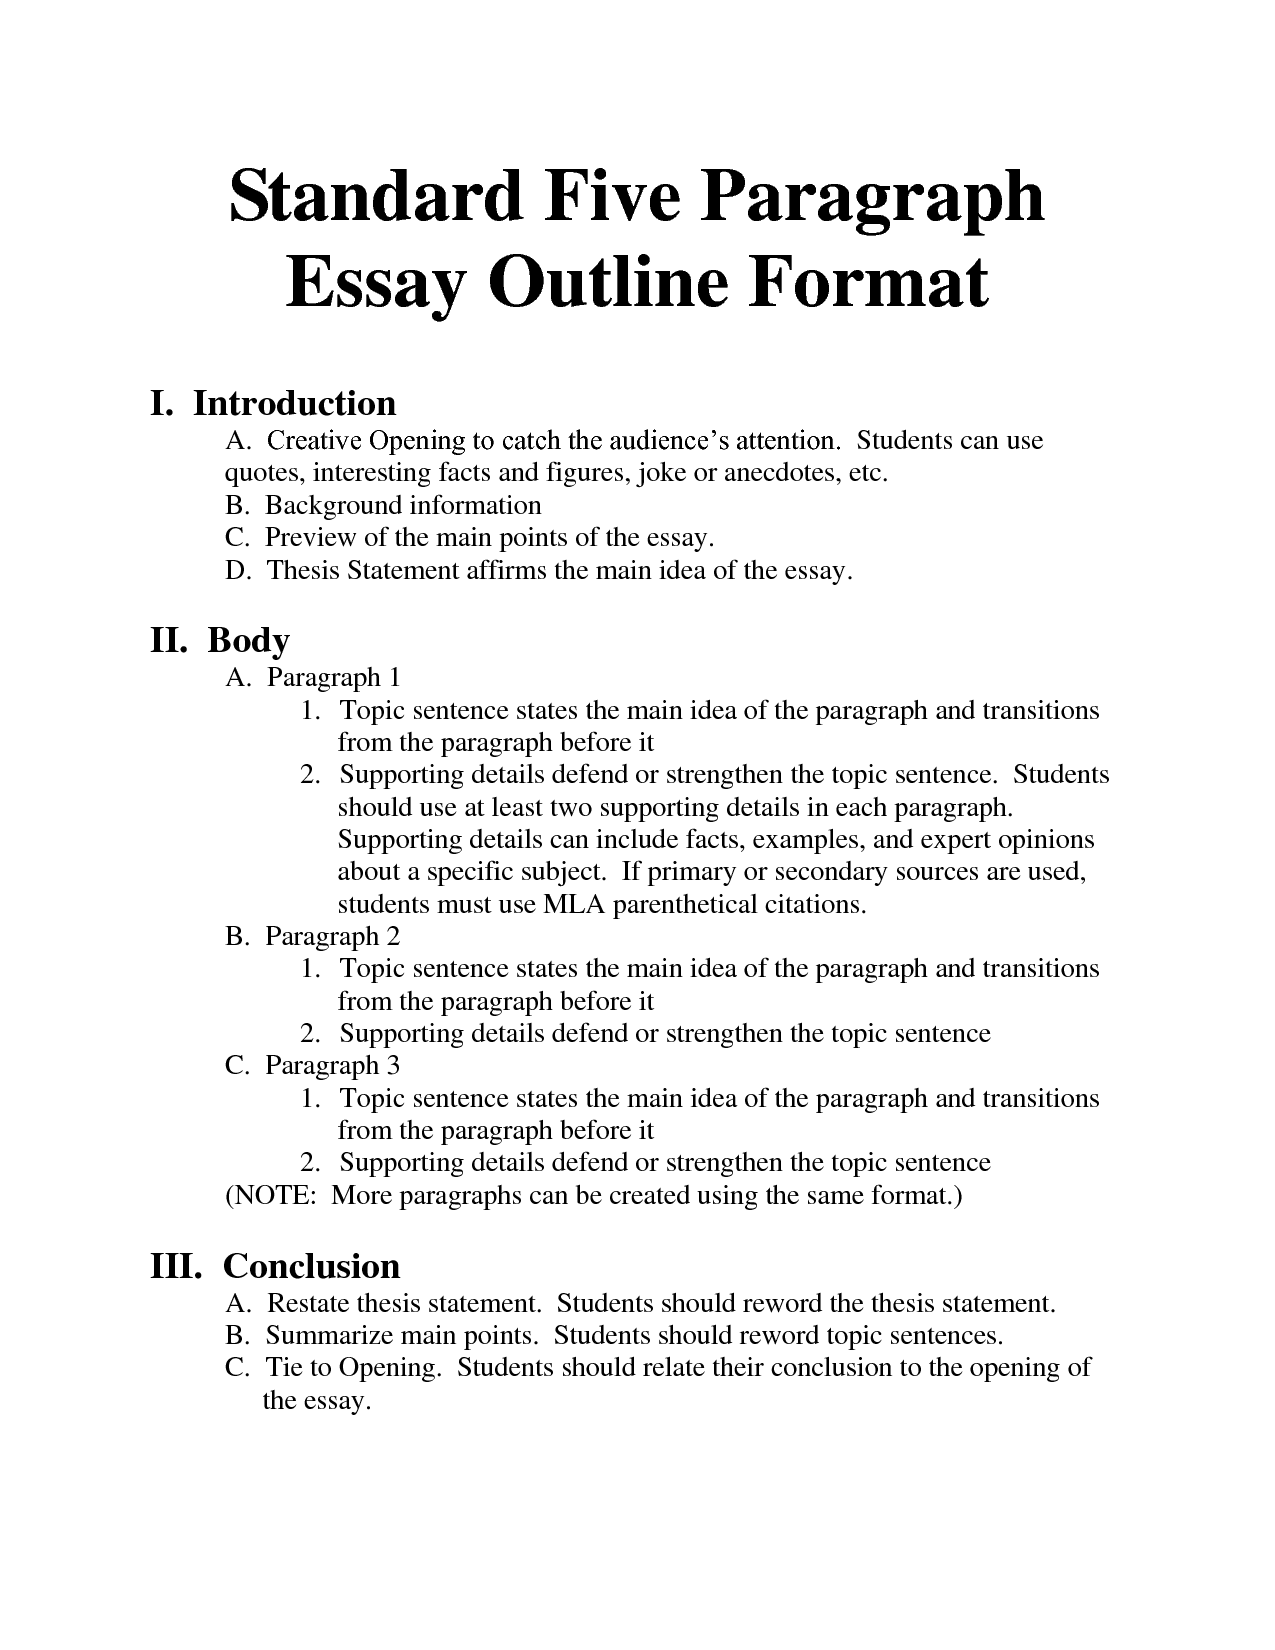 essay formats examples template essay formats examples good essay conclusions - Example Of A Conclusion For An Essay